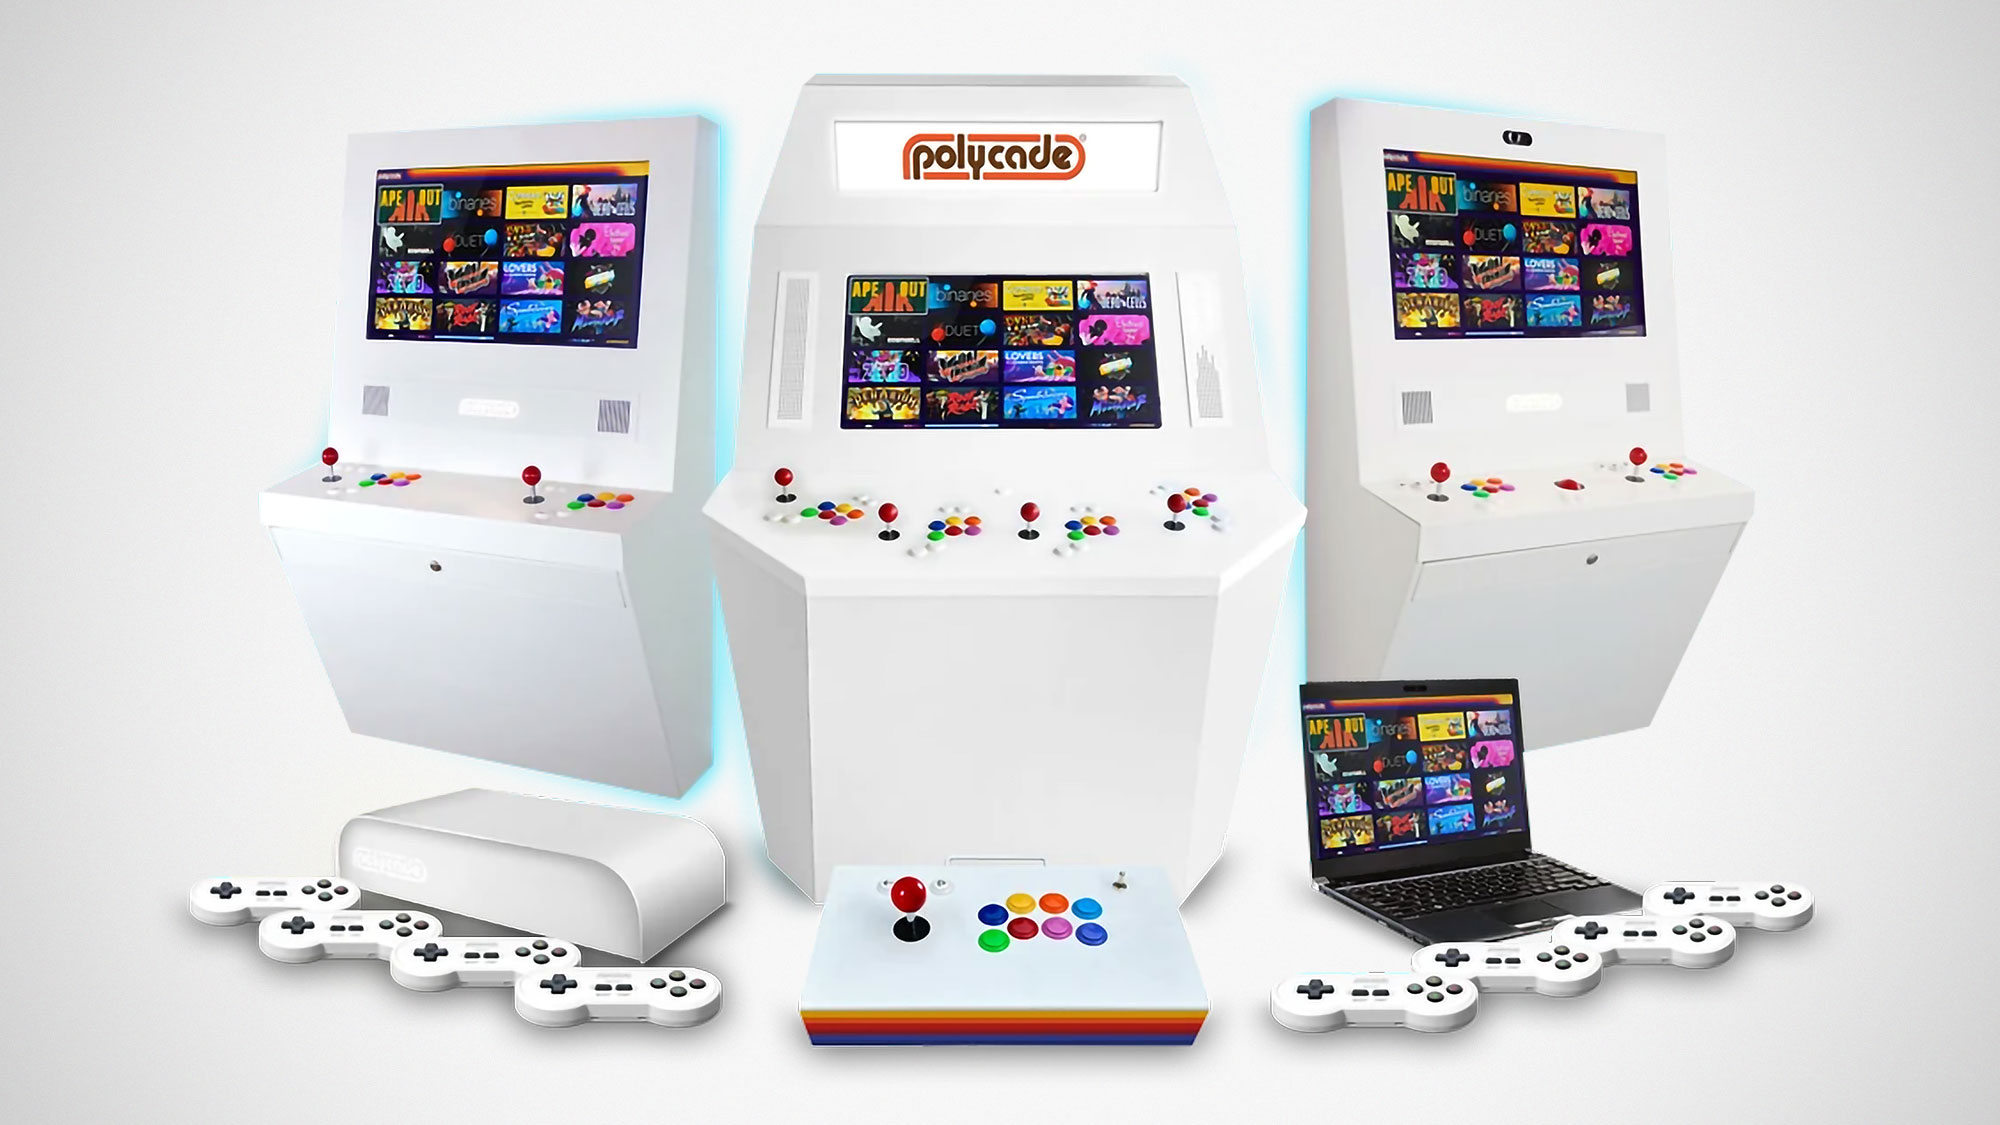 Pc Games For Arcade Cabinet Gif